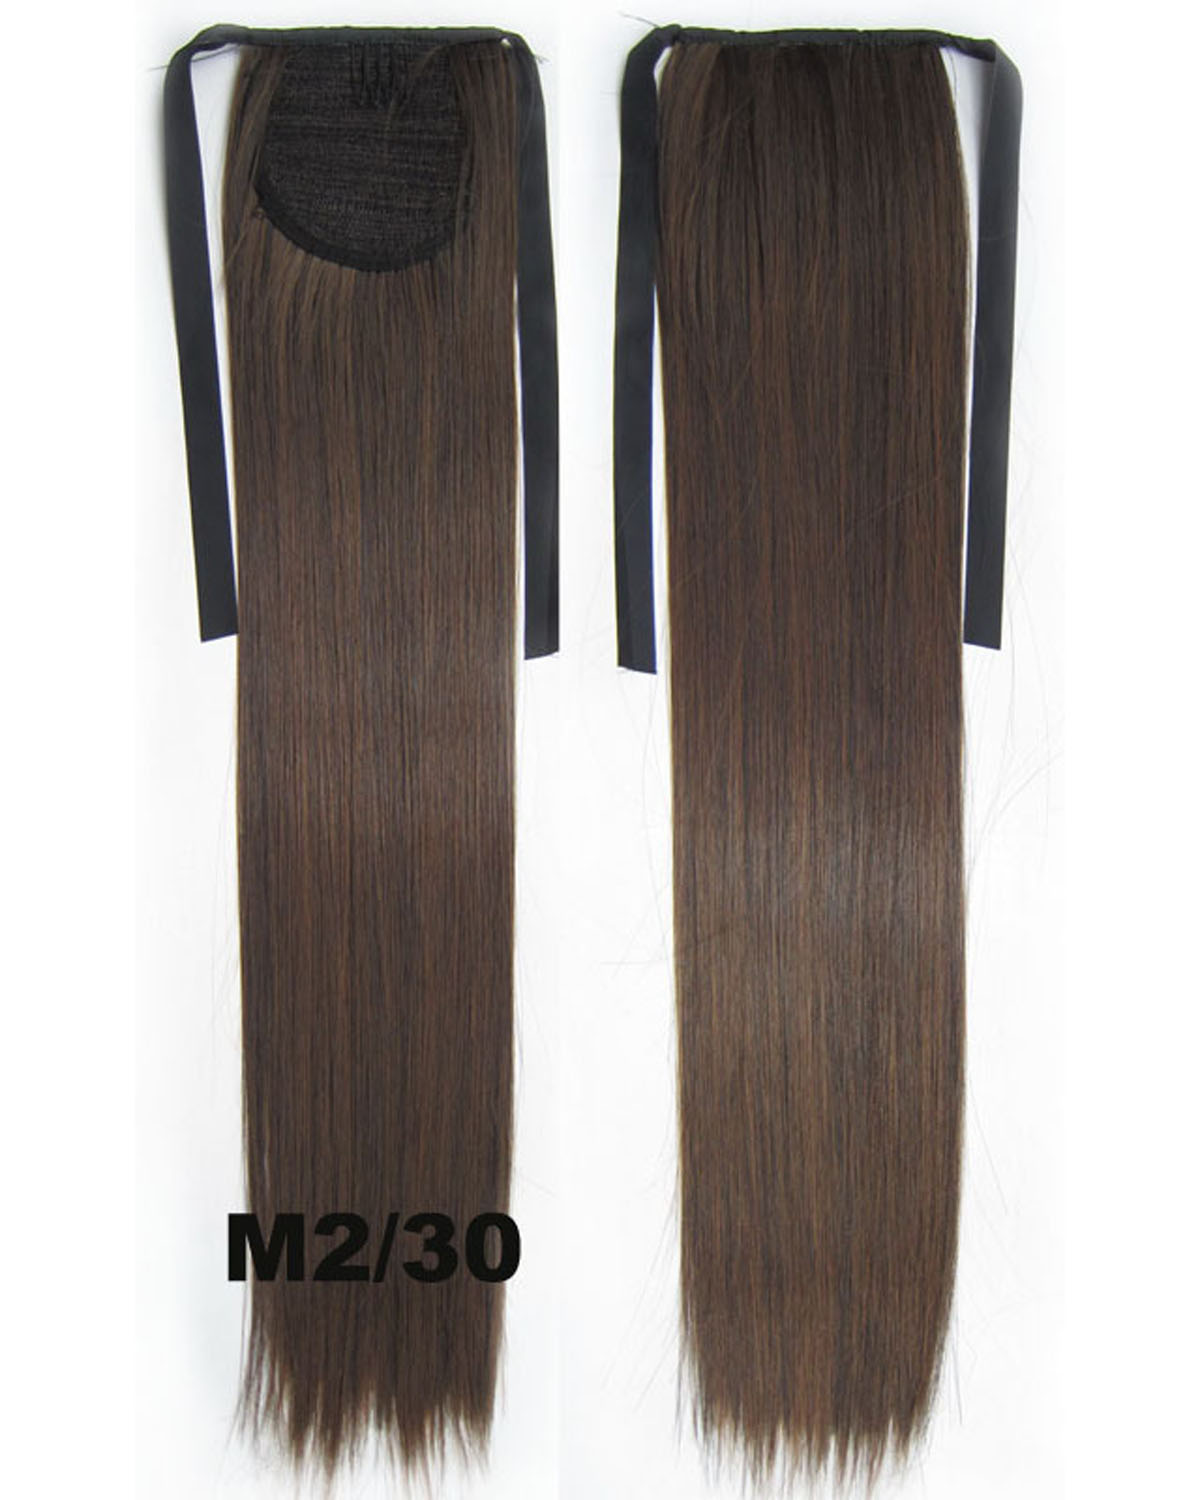 22 Inch Lady Popular Straight and Long Lace/Ribbon Synthetic Hair Ponytail M2/30#